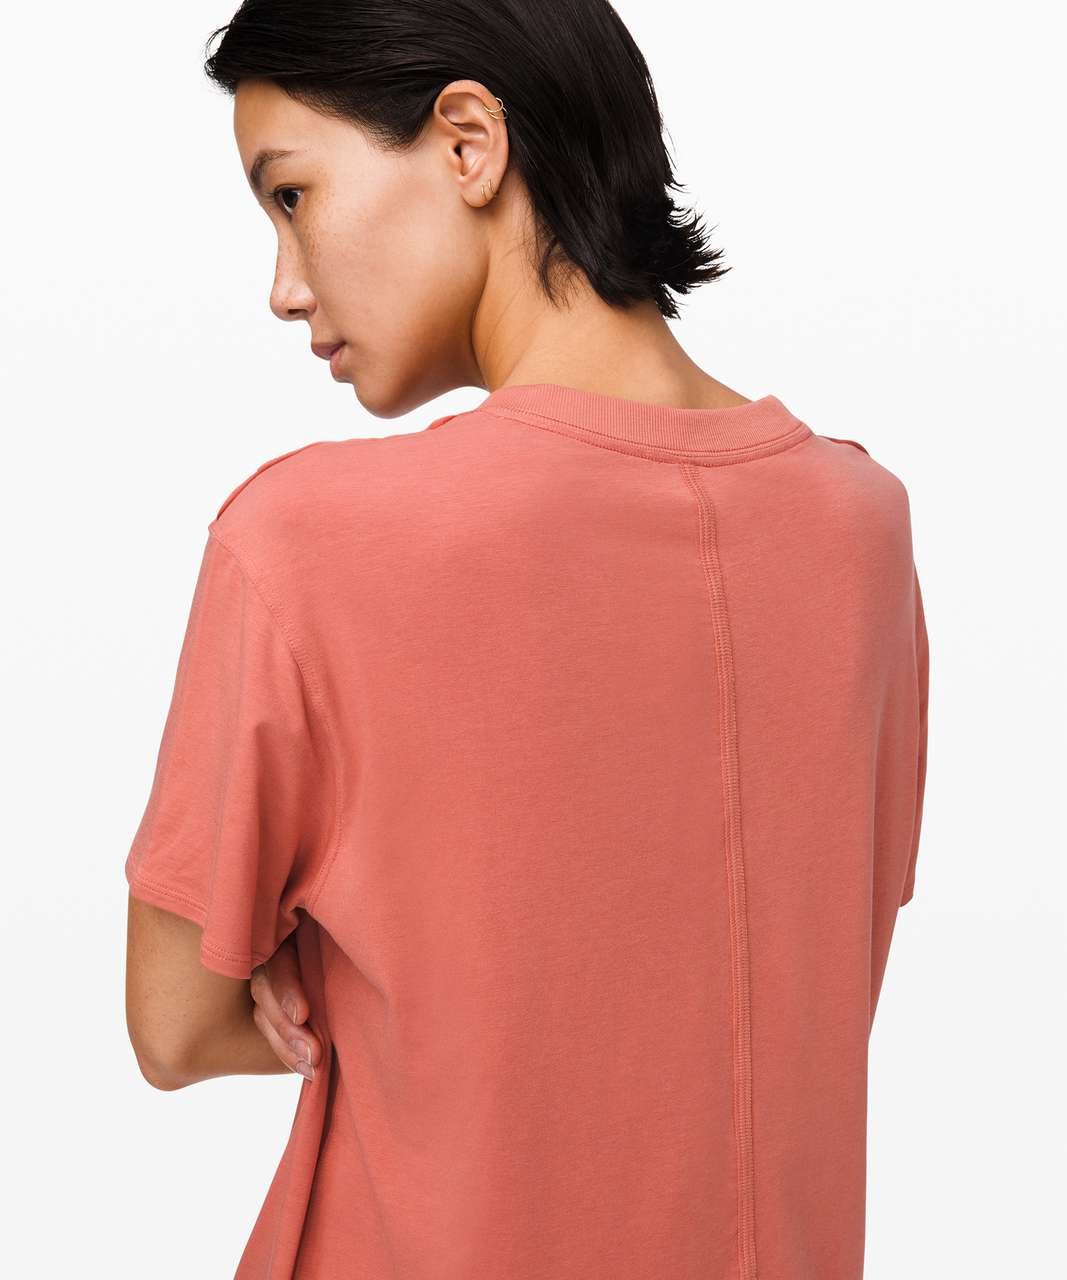 Lululemon All Yours Boyfriend Tee - Copper Clay